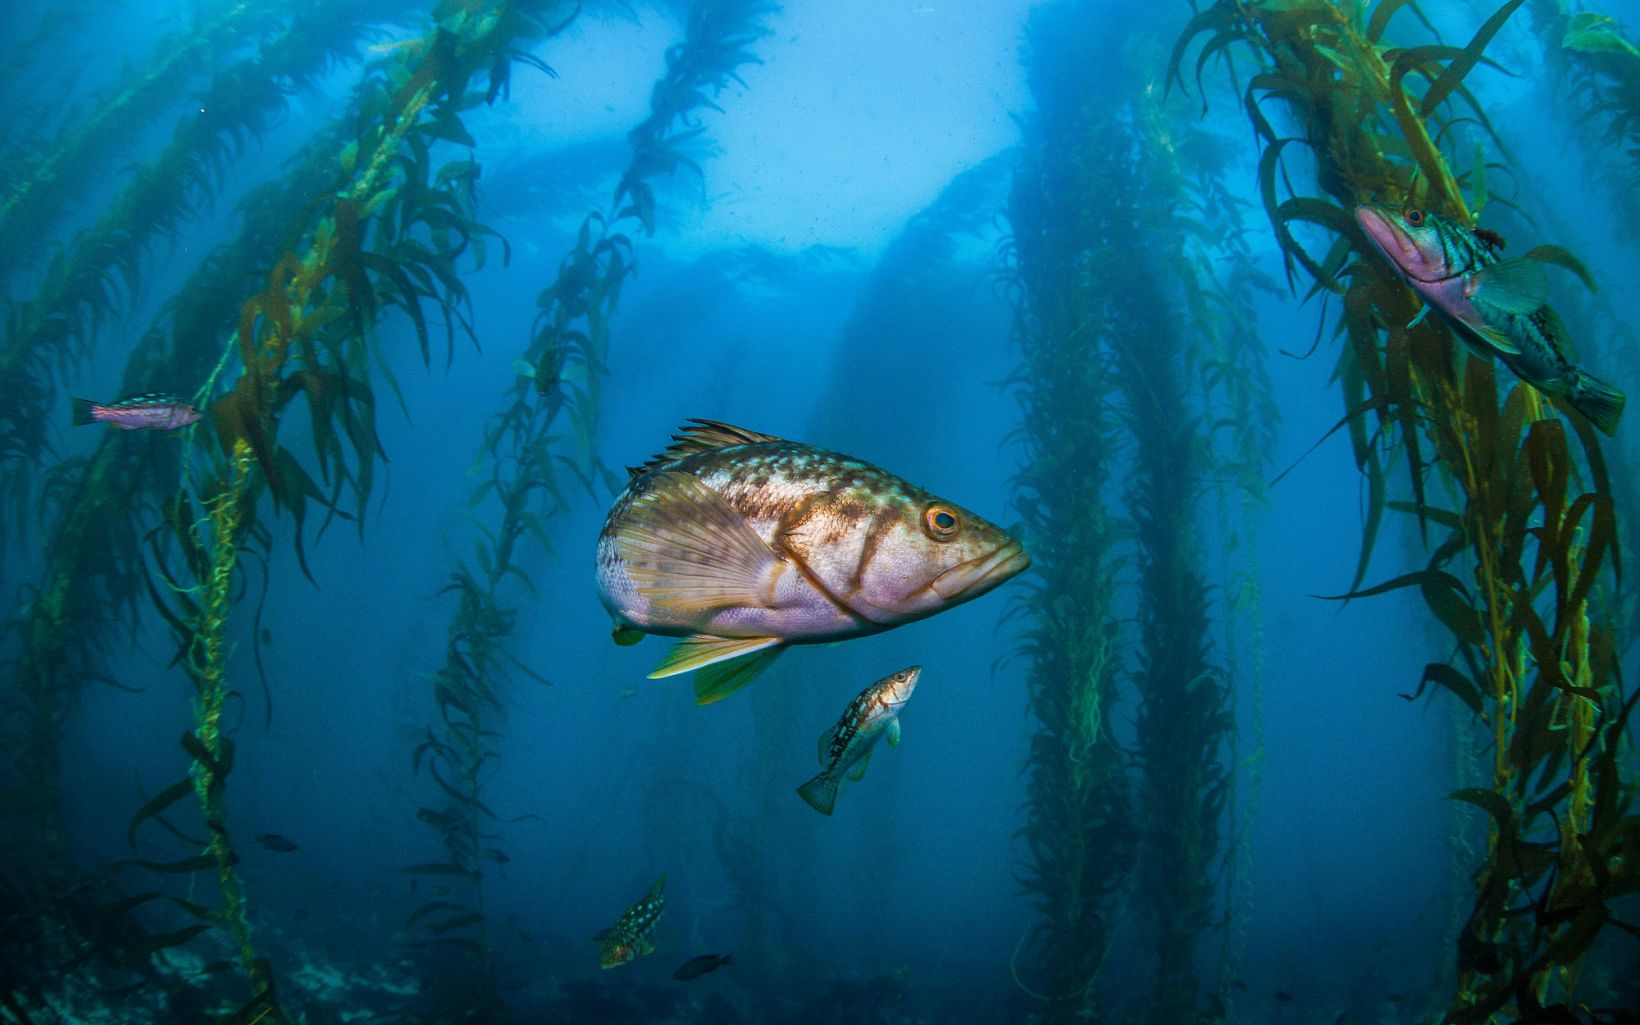 Silver fish with brown spots in a kelp forest.